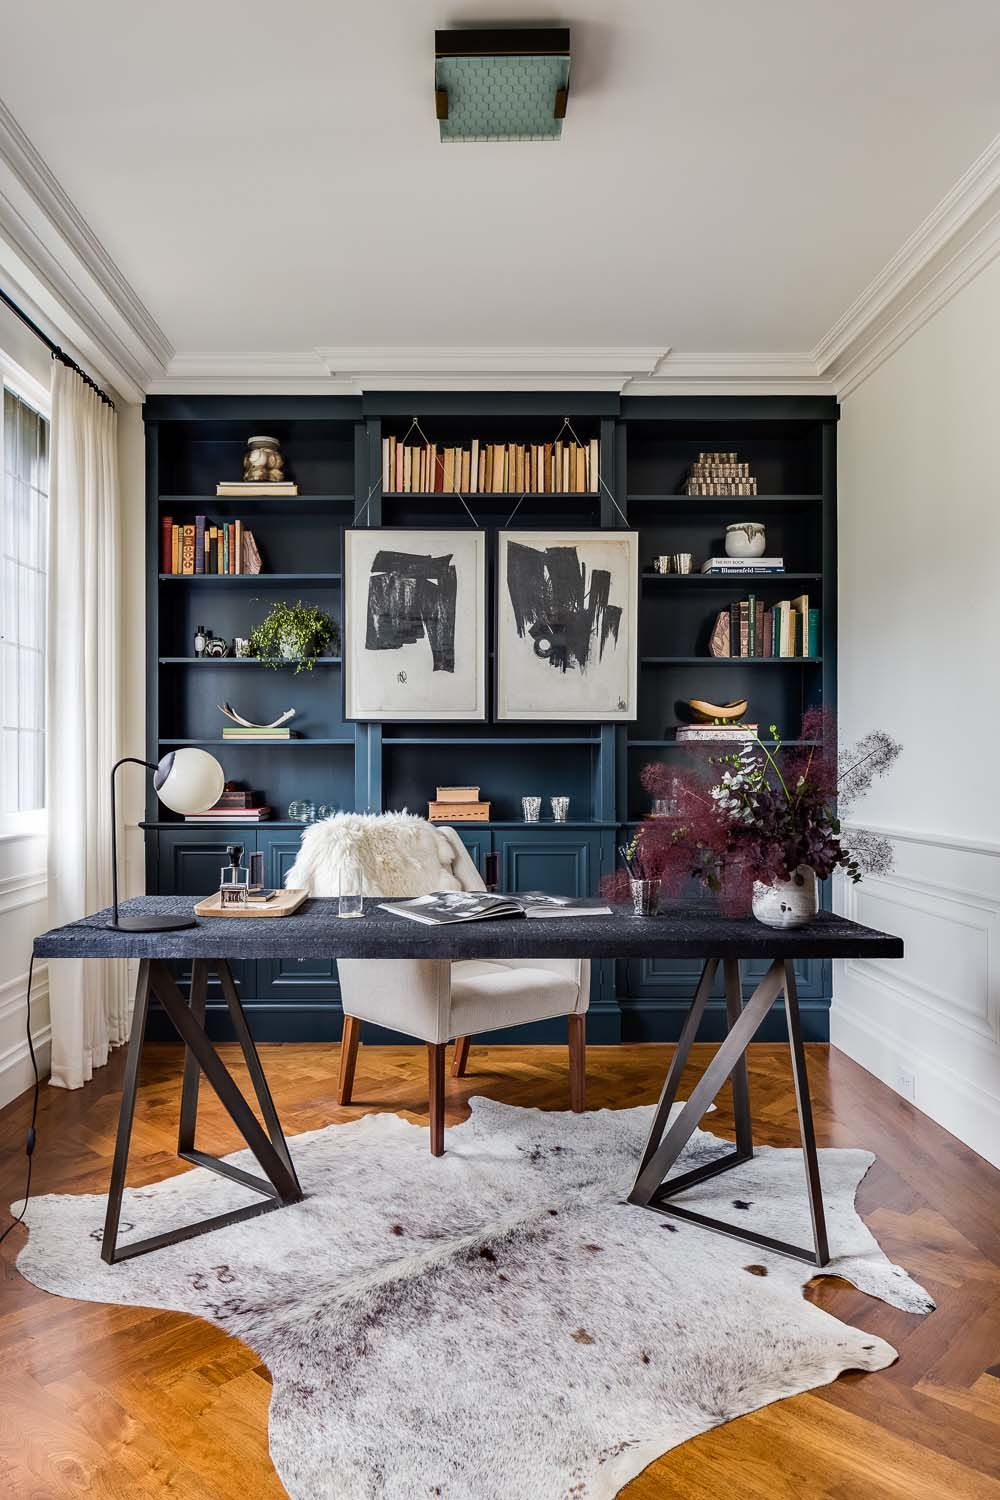 dreamy home offices with libraries for creative inspiration also how to build industrial wood shelves ideas office rh pinterest